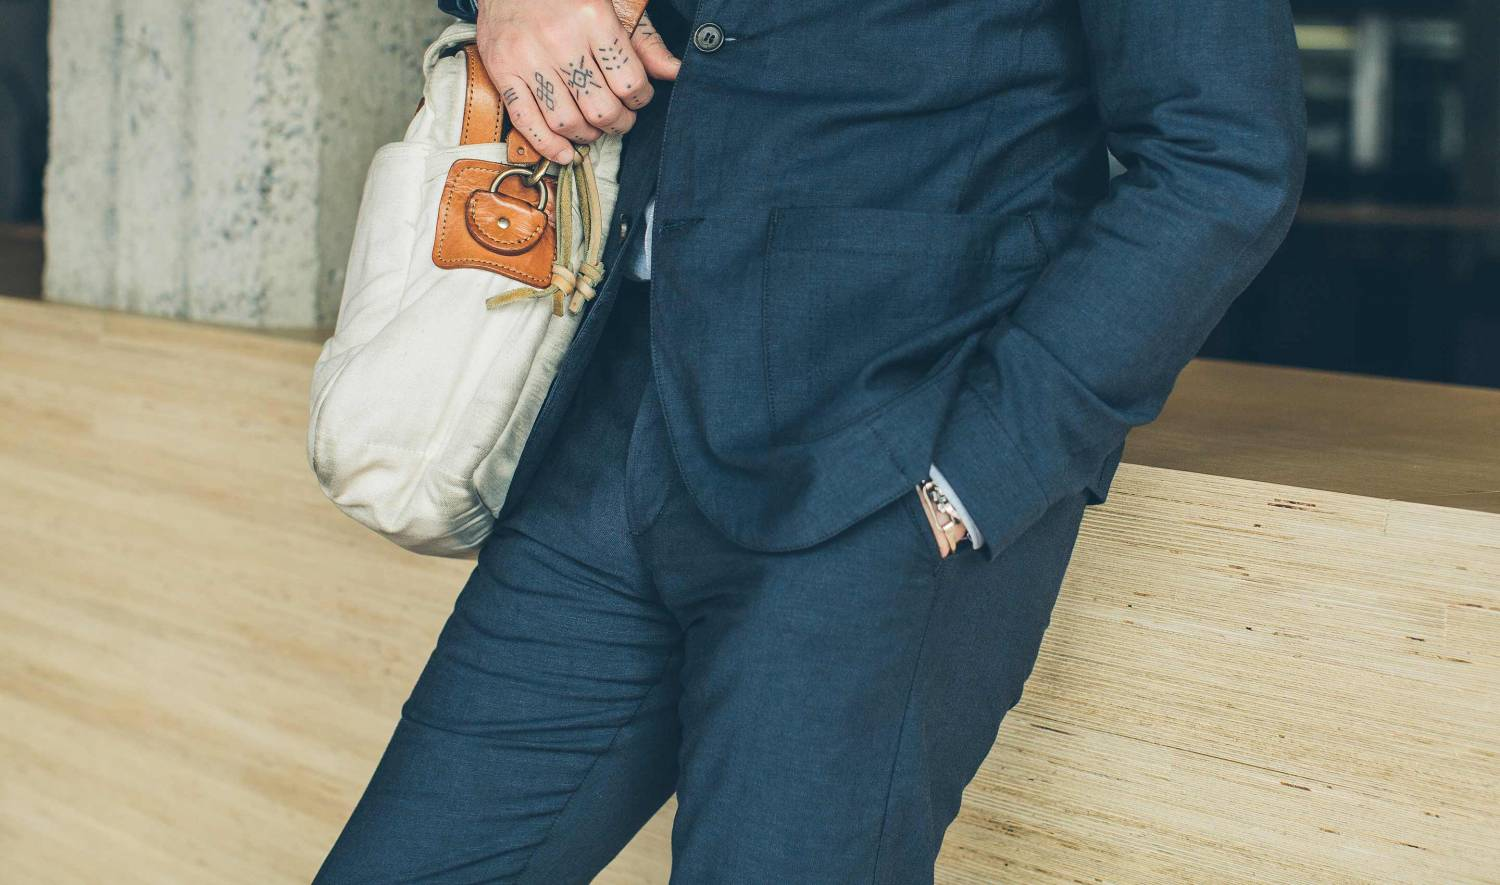 summer men's style, men's summer style, summer style, style upgrade, statement pieces, female perspective, impress women, men's fashion, menswear, summer wardrobe, weekend style, taylor stitch, taylor stitch trousers, navy trousers, linen blend trousers, navy pants